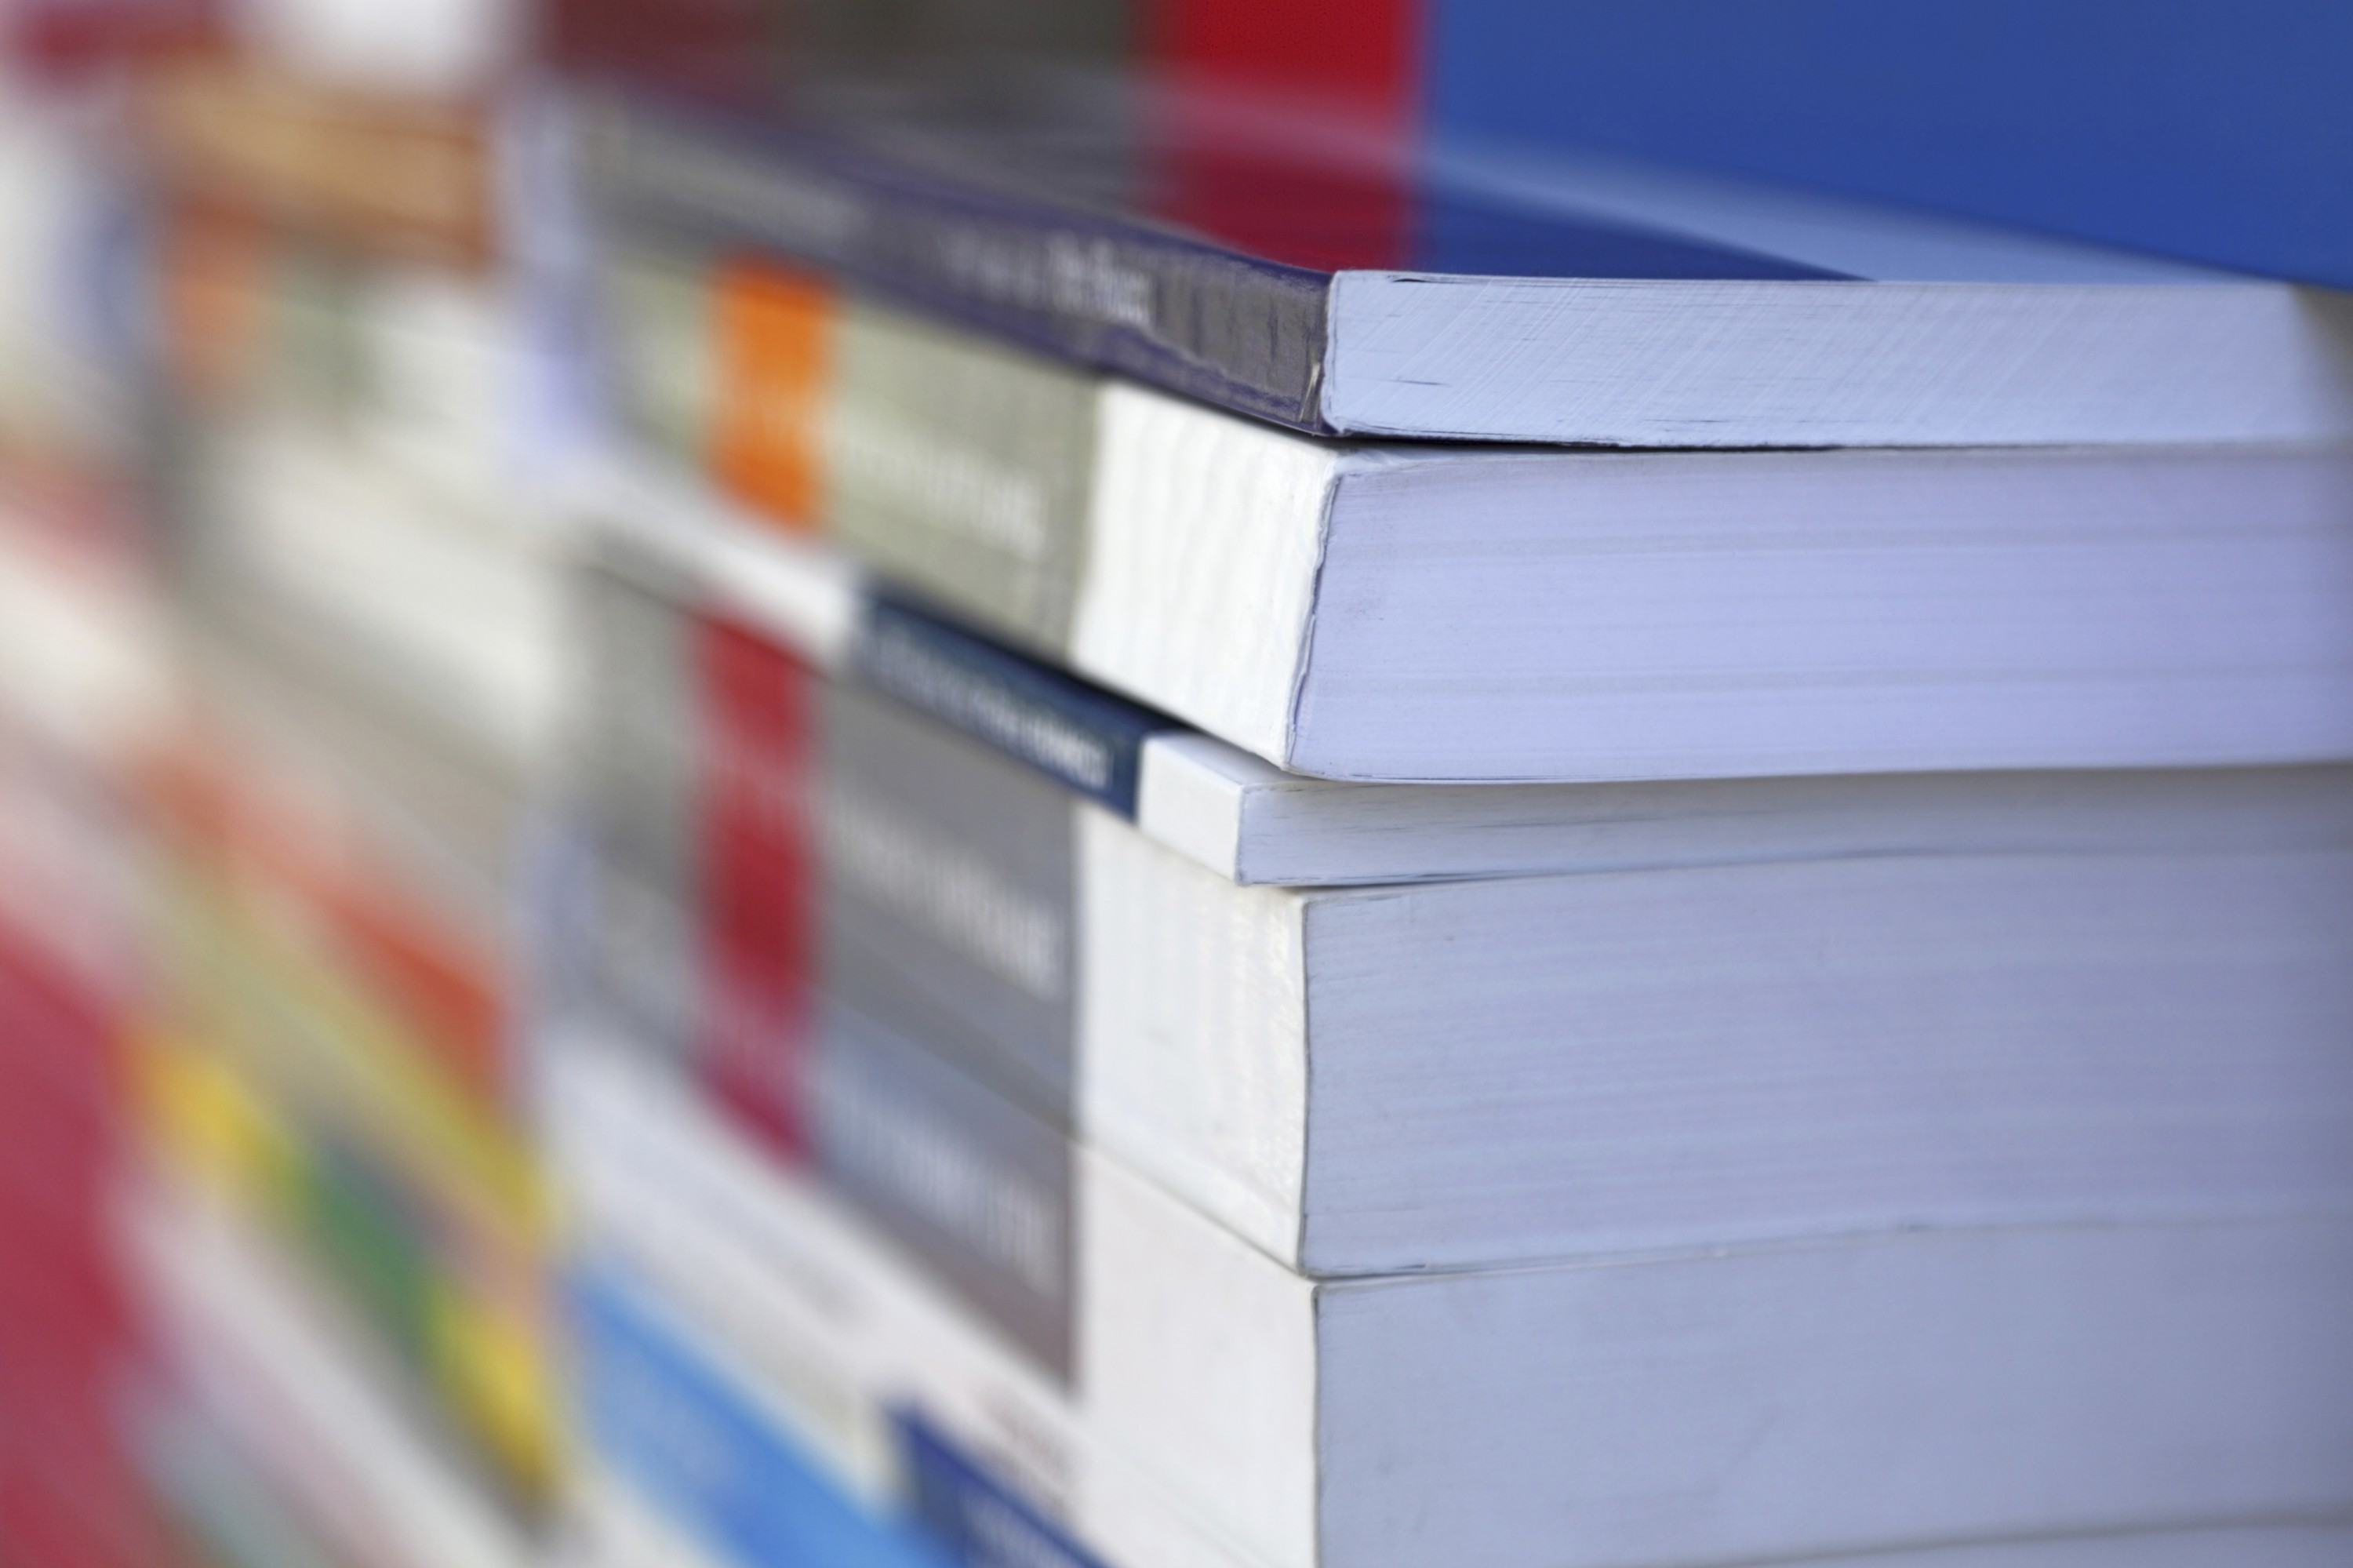 Abstract image of textbooks at a bookstore. (iStock Photo)